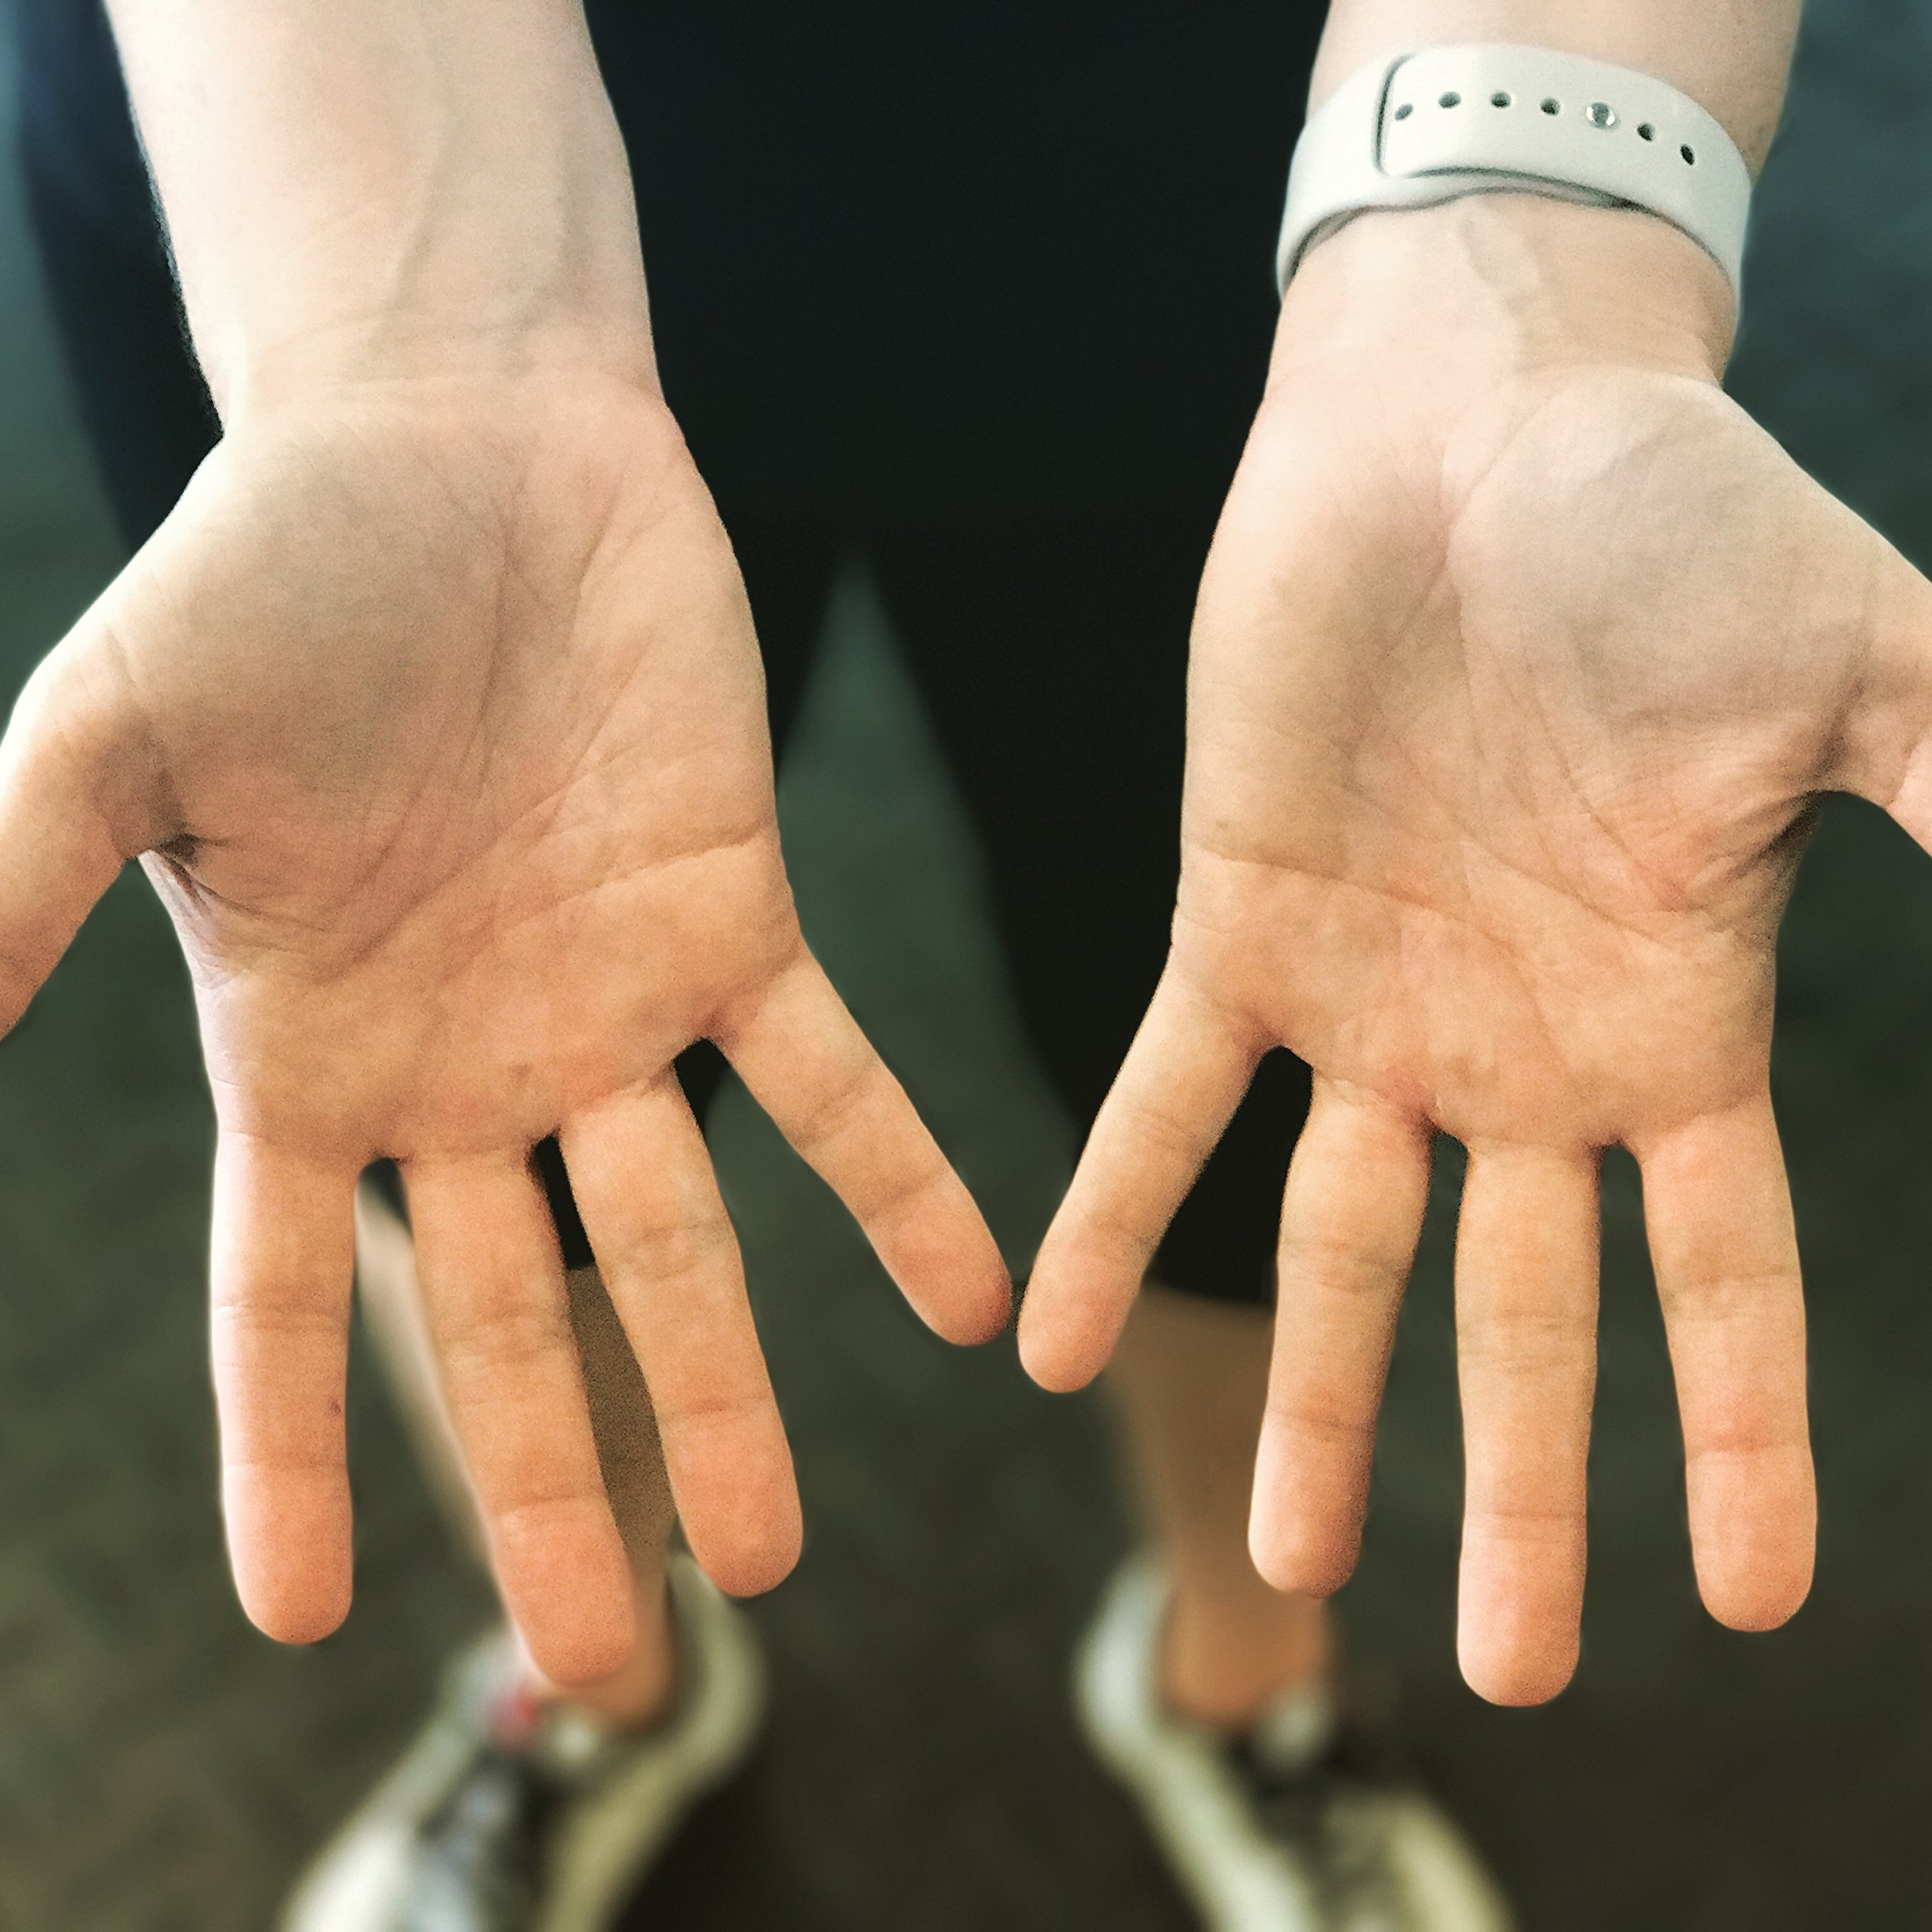 WodWax Wod Wax Antibacterial Hand Grip Enhancer & Palm Rip Preventative for Pull Ups, WODs, Gymnastics, Weightlifting Helps Prevent Rips and Slippage without bulky gloves and grips. (1-Pack) by WodWax (Image #5)